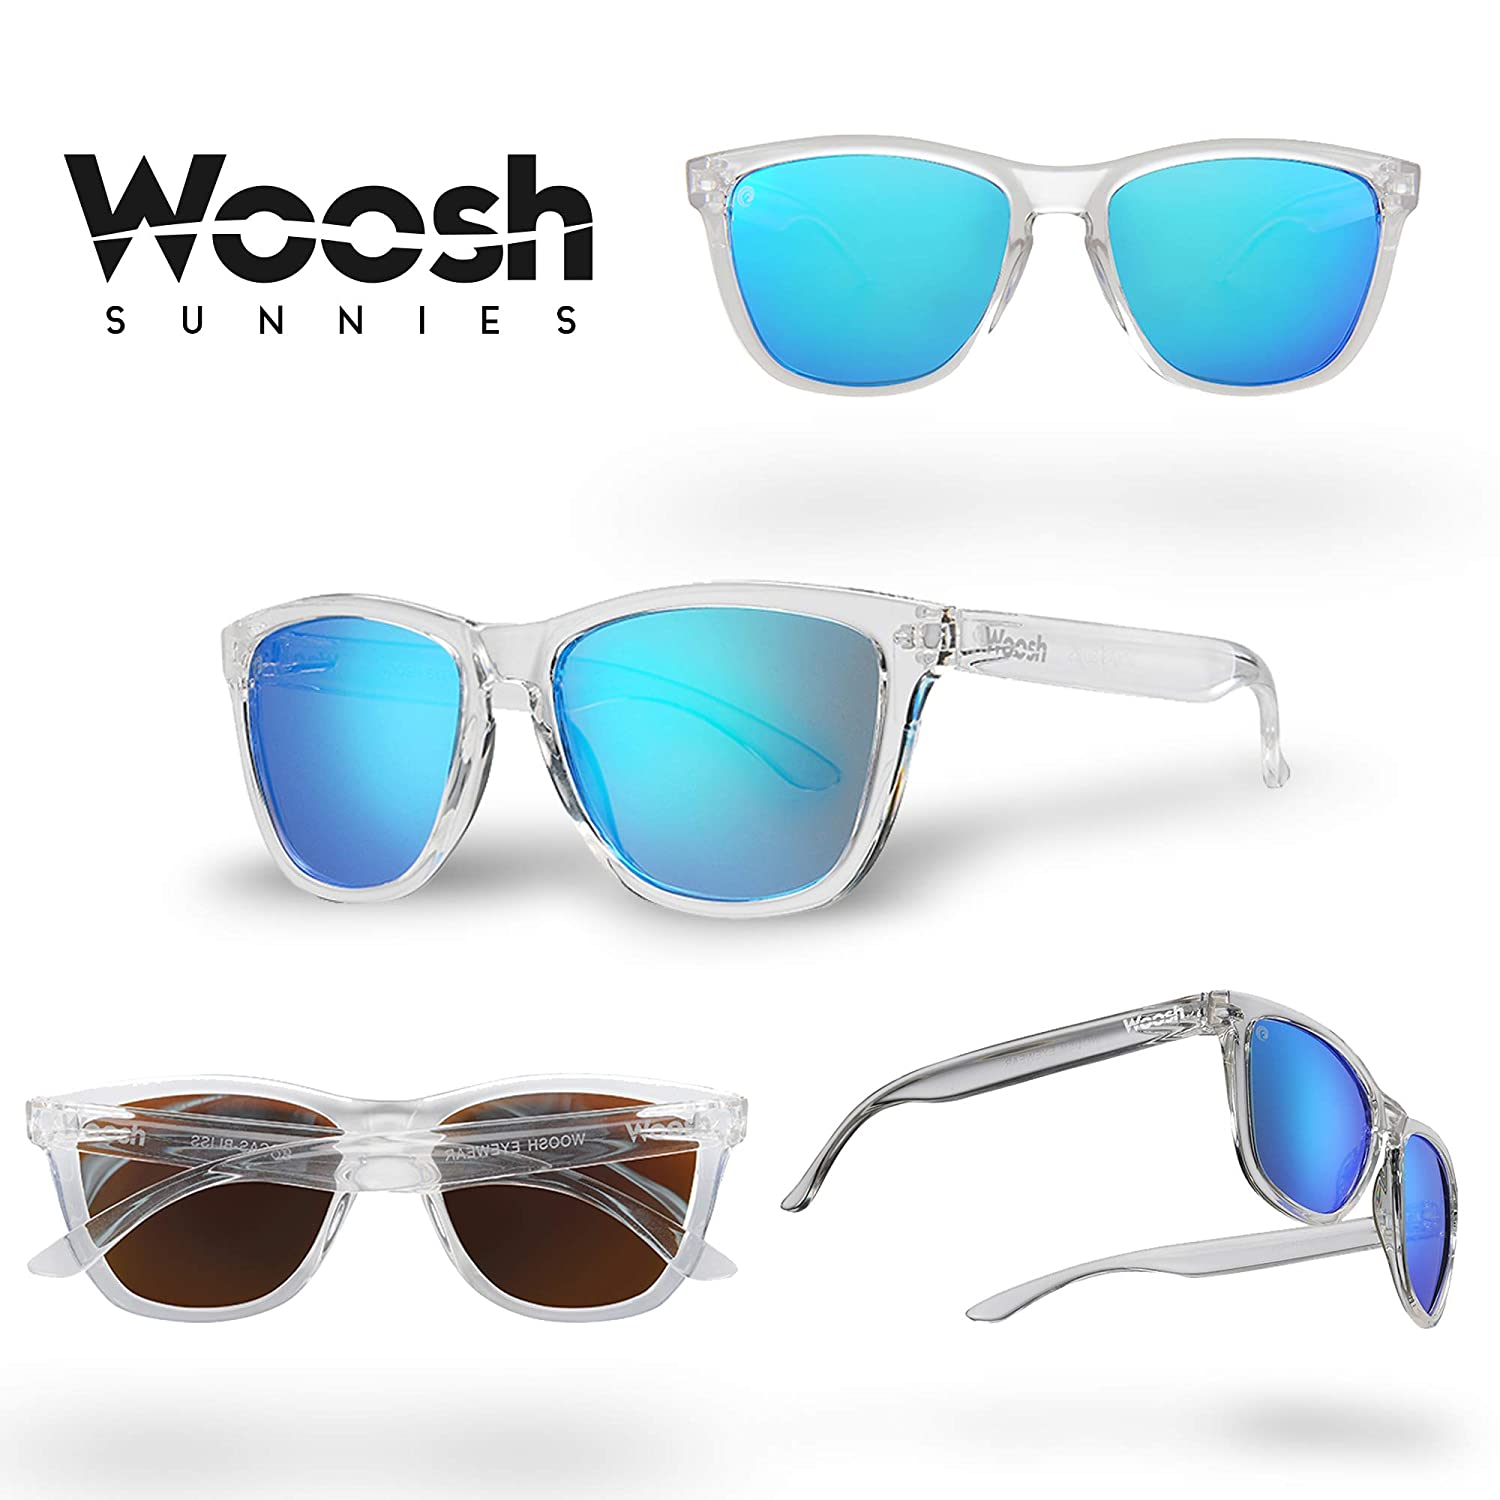 5189f2dc92bd Amazon.com  WOOSH Polarized Lightweight Sunglasses for Men and Women - Blue  Lens   Clear Frame - Unisex Sunnies for Fishing